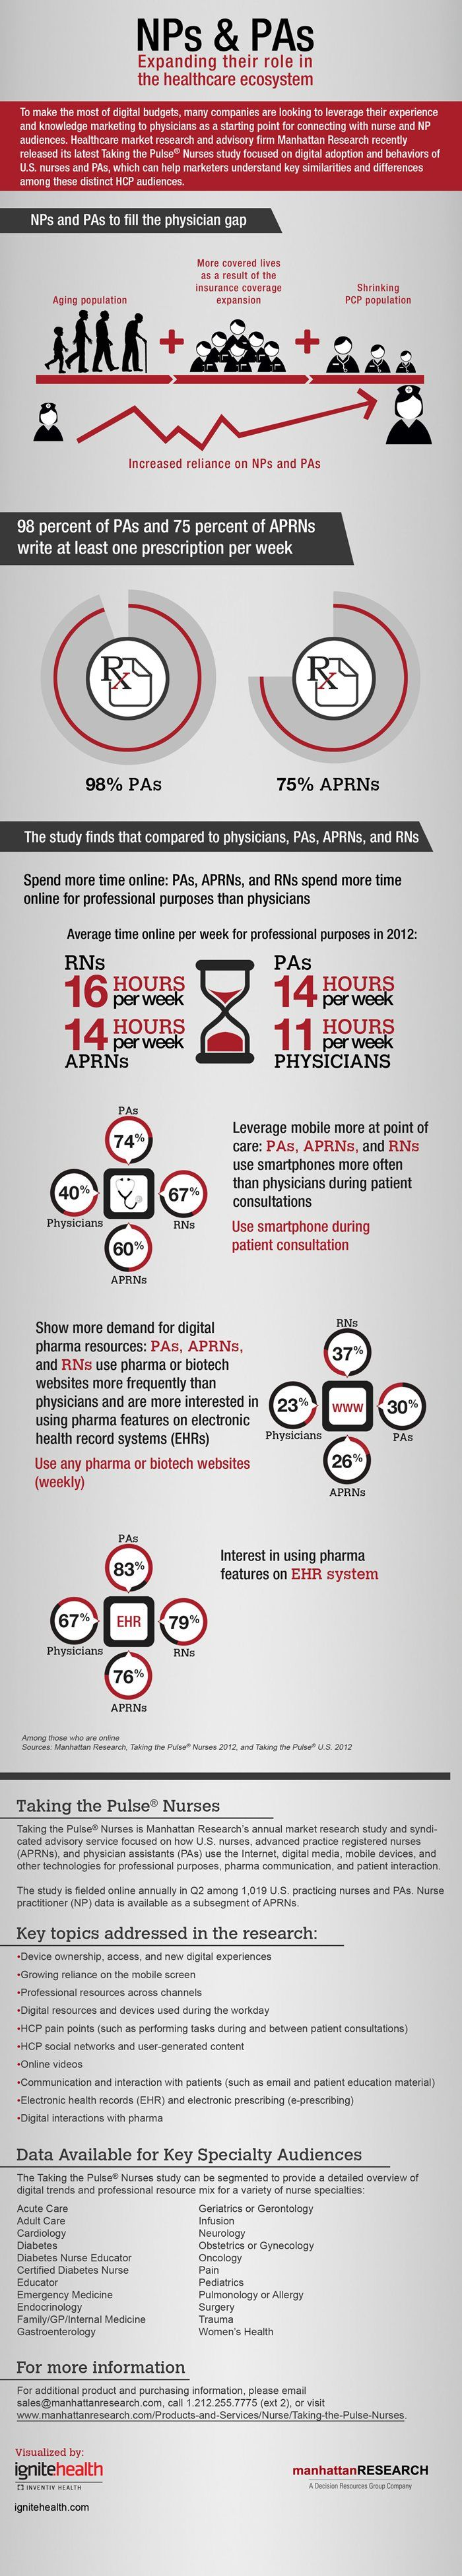 Nurse Practitioners and Physician Assistants expand their role in the healthcare ecosystem to fill the physician gap